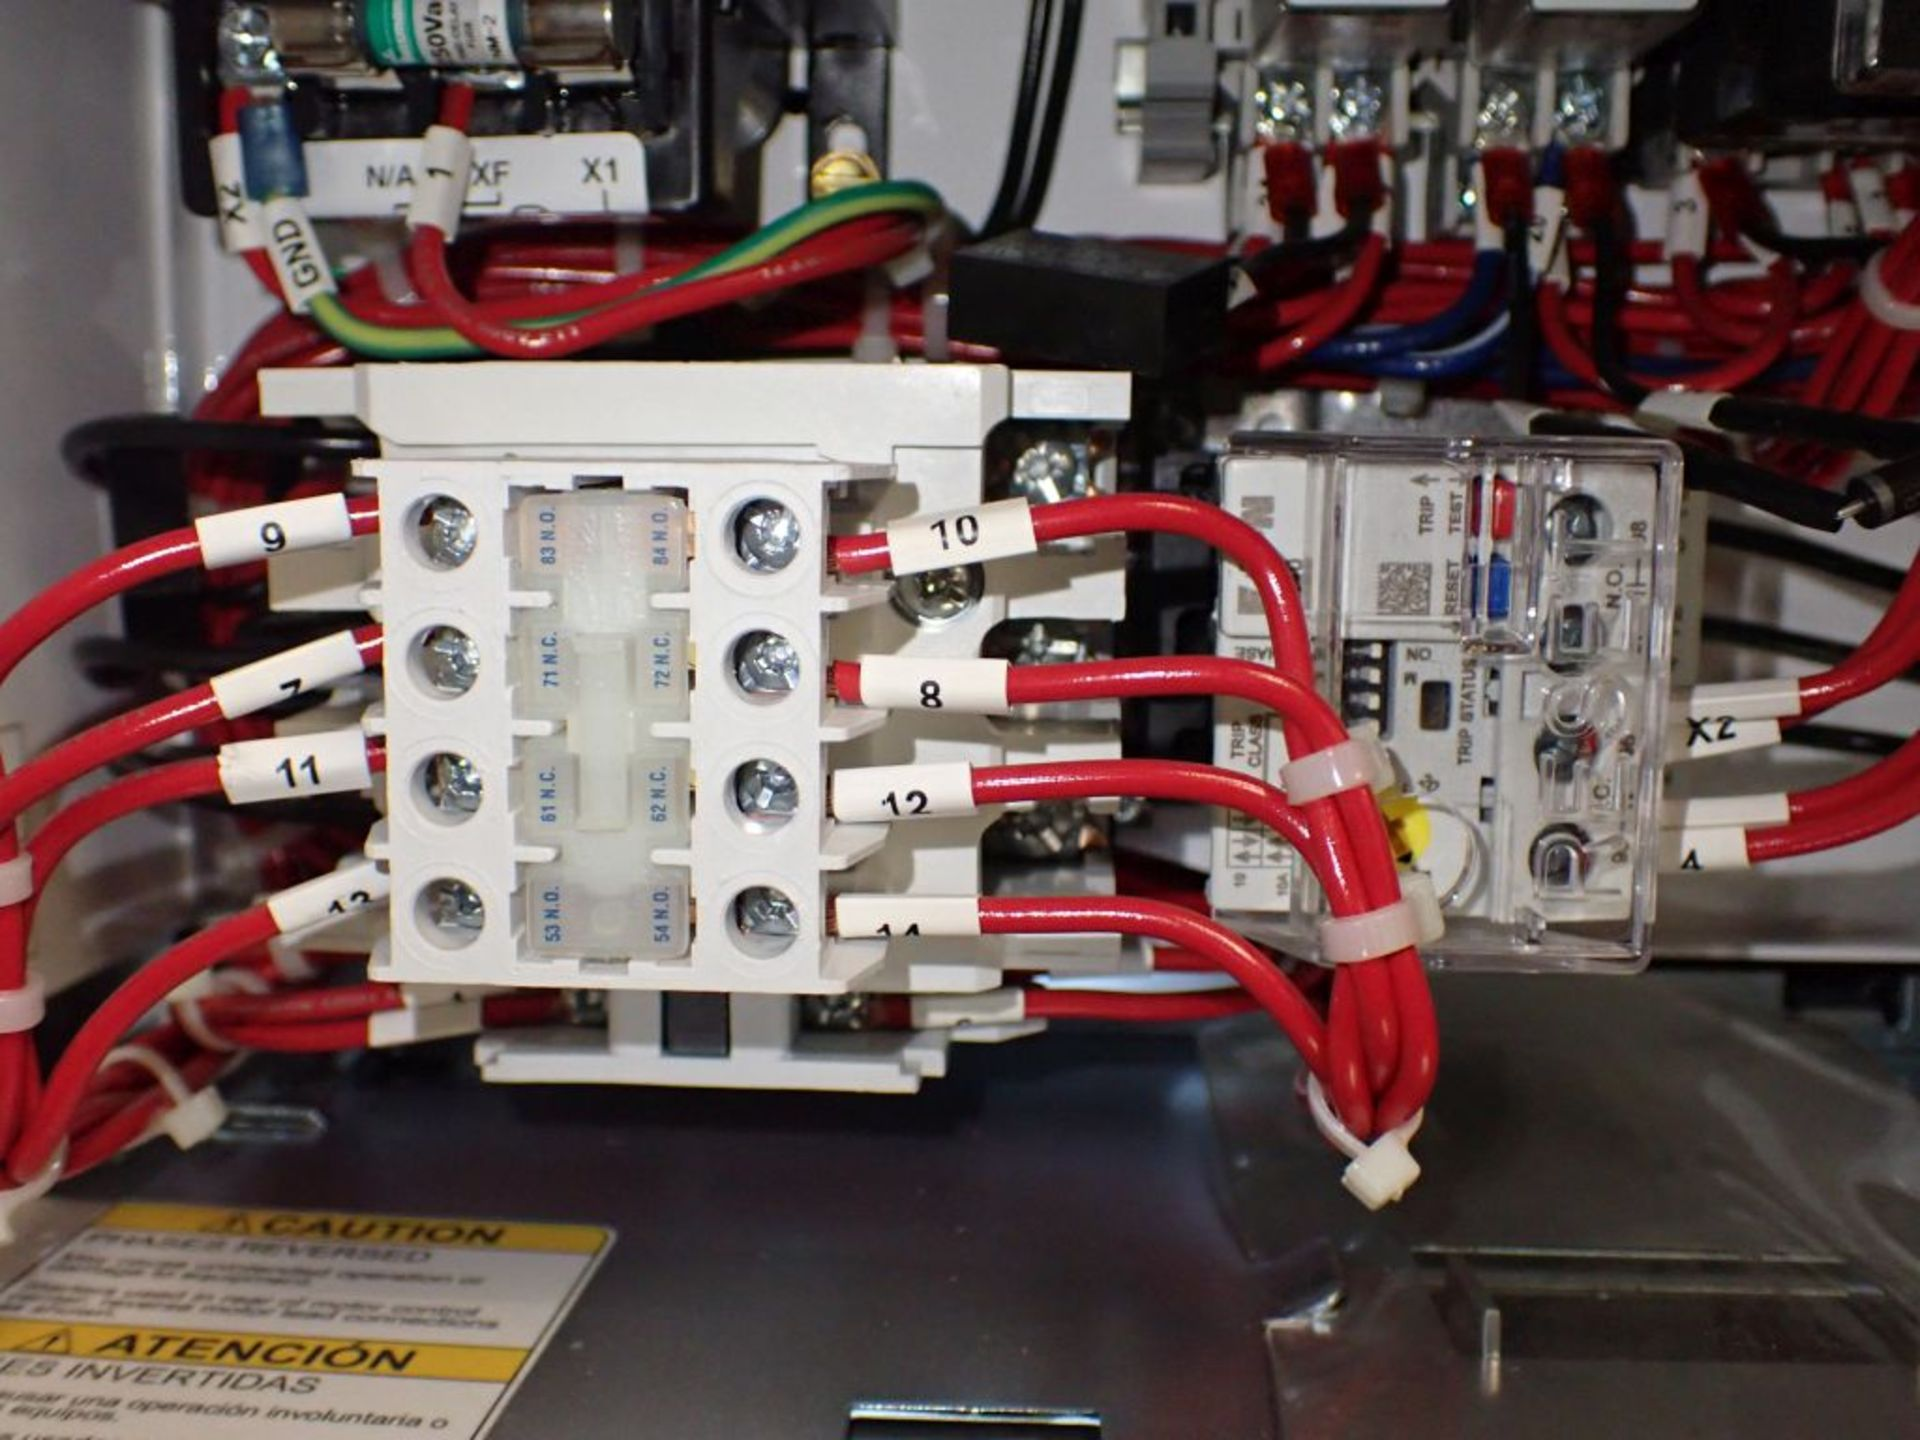 Eaton Freedom 2100 Series Motor Control Center | (11) F206-30A-10HP; (5) F206-15A-10HP; (1) SVX900- - Image 28 of 102